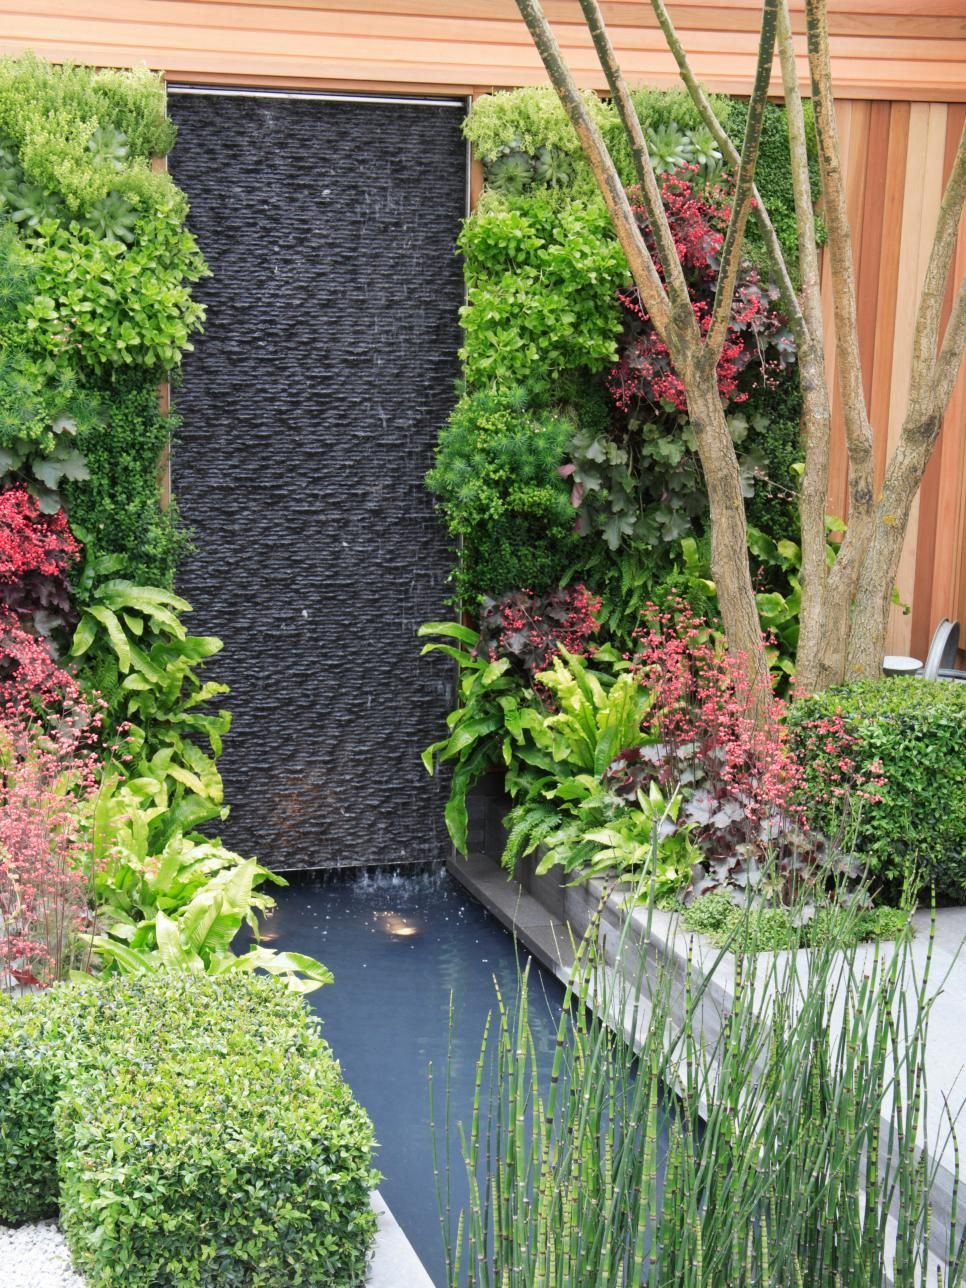 Vertical garden design with orchids space saving backyard landscaping - Soothing Retreat Vertical Or Wall Planting Optimizes The Restricted Space While Retaining A Softening Effect A Textured Panel Of Basalt Provides Sound As